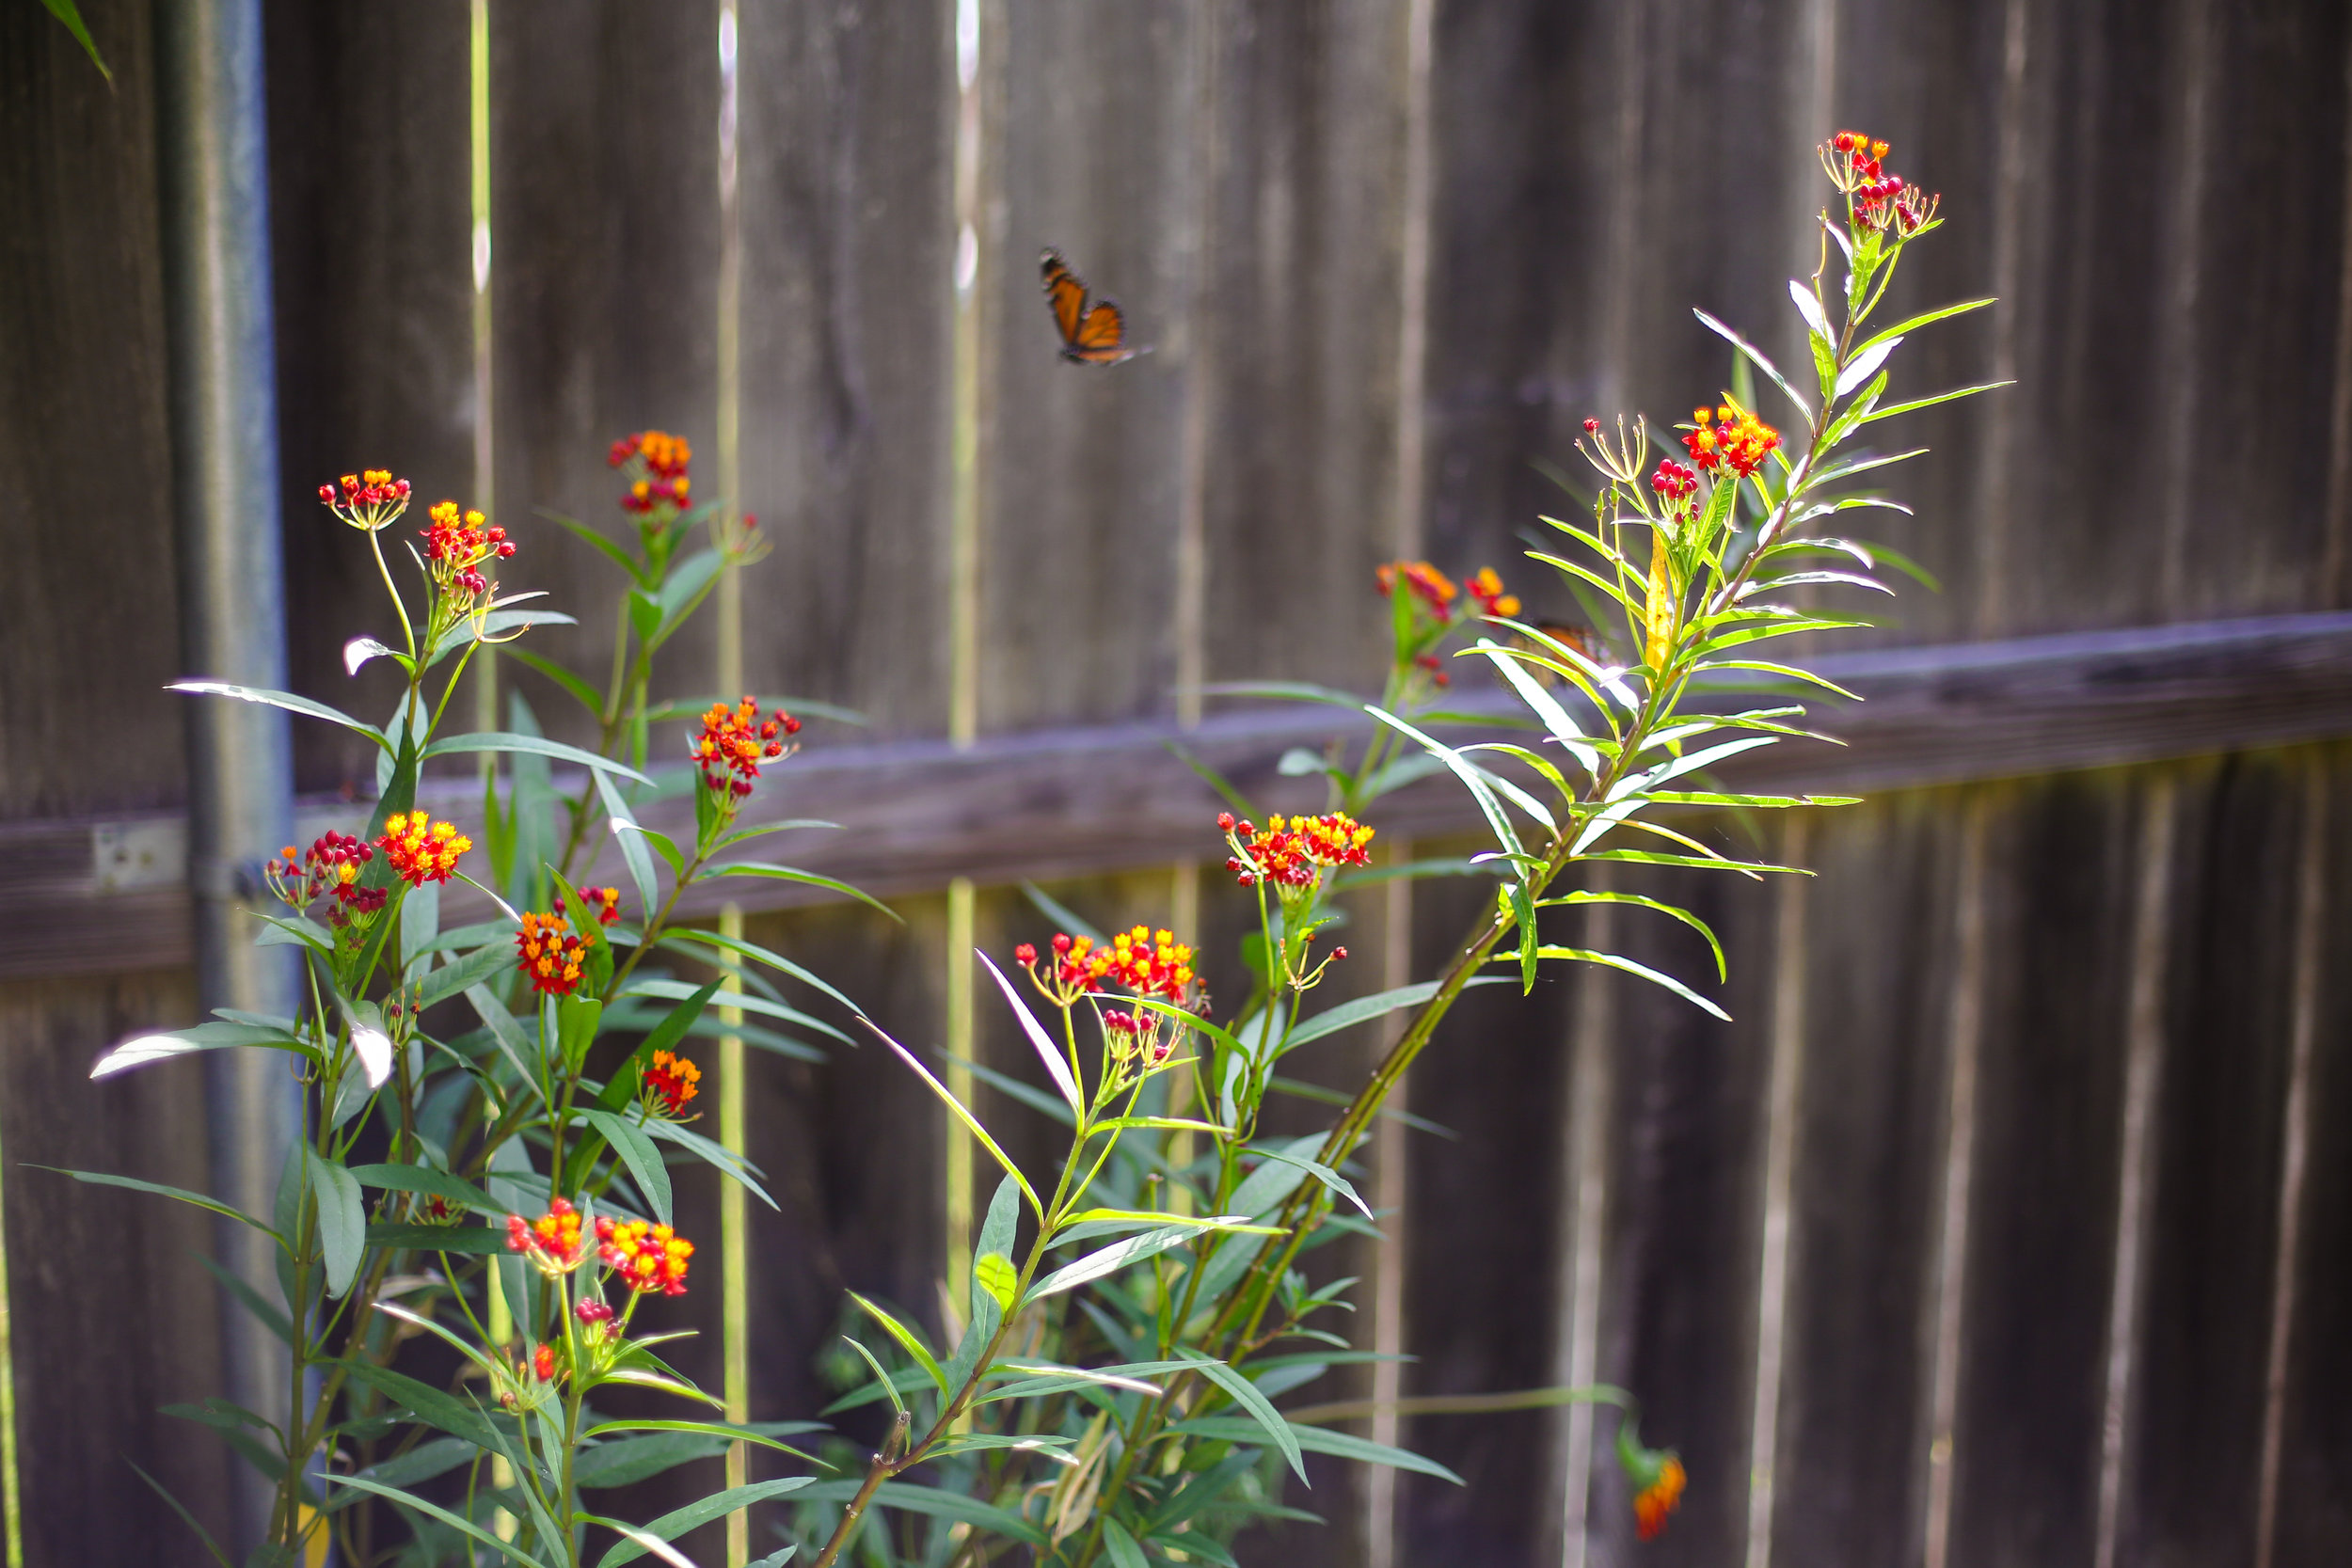 Tropical Milkweed and Monarch butterfly